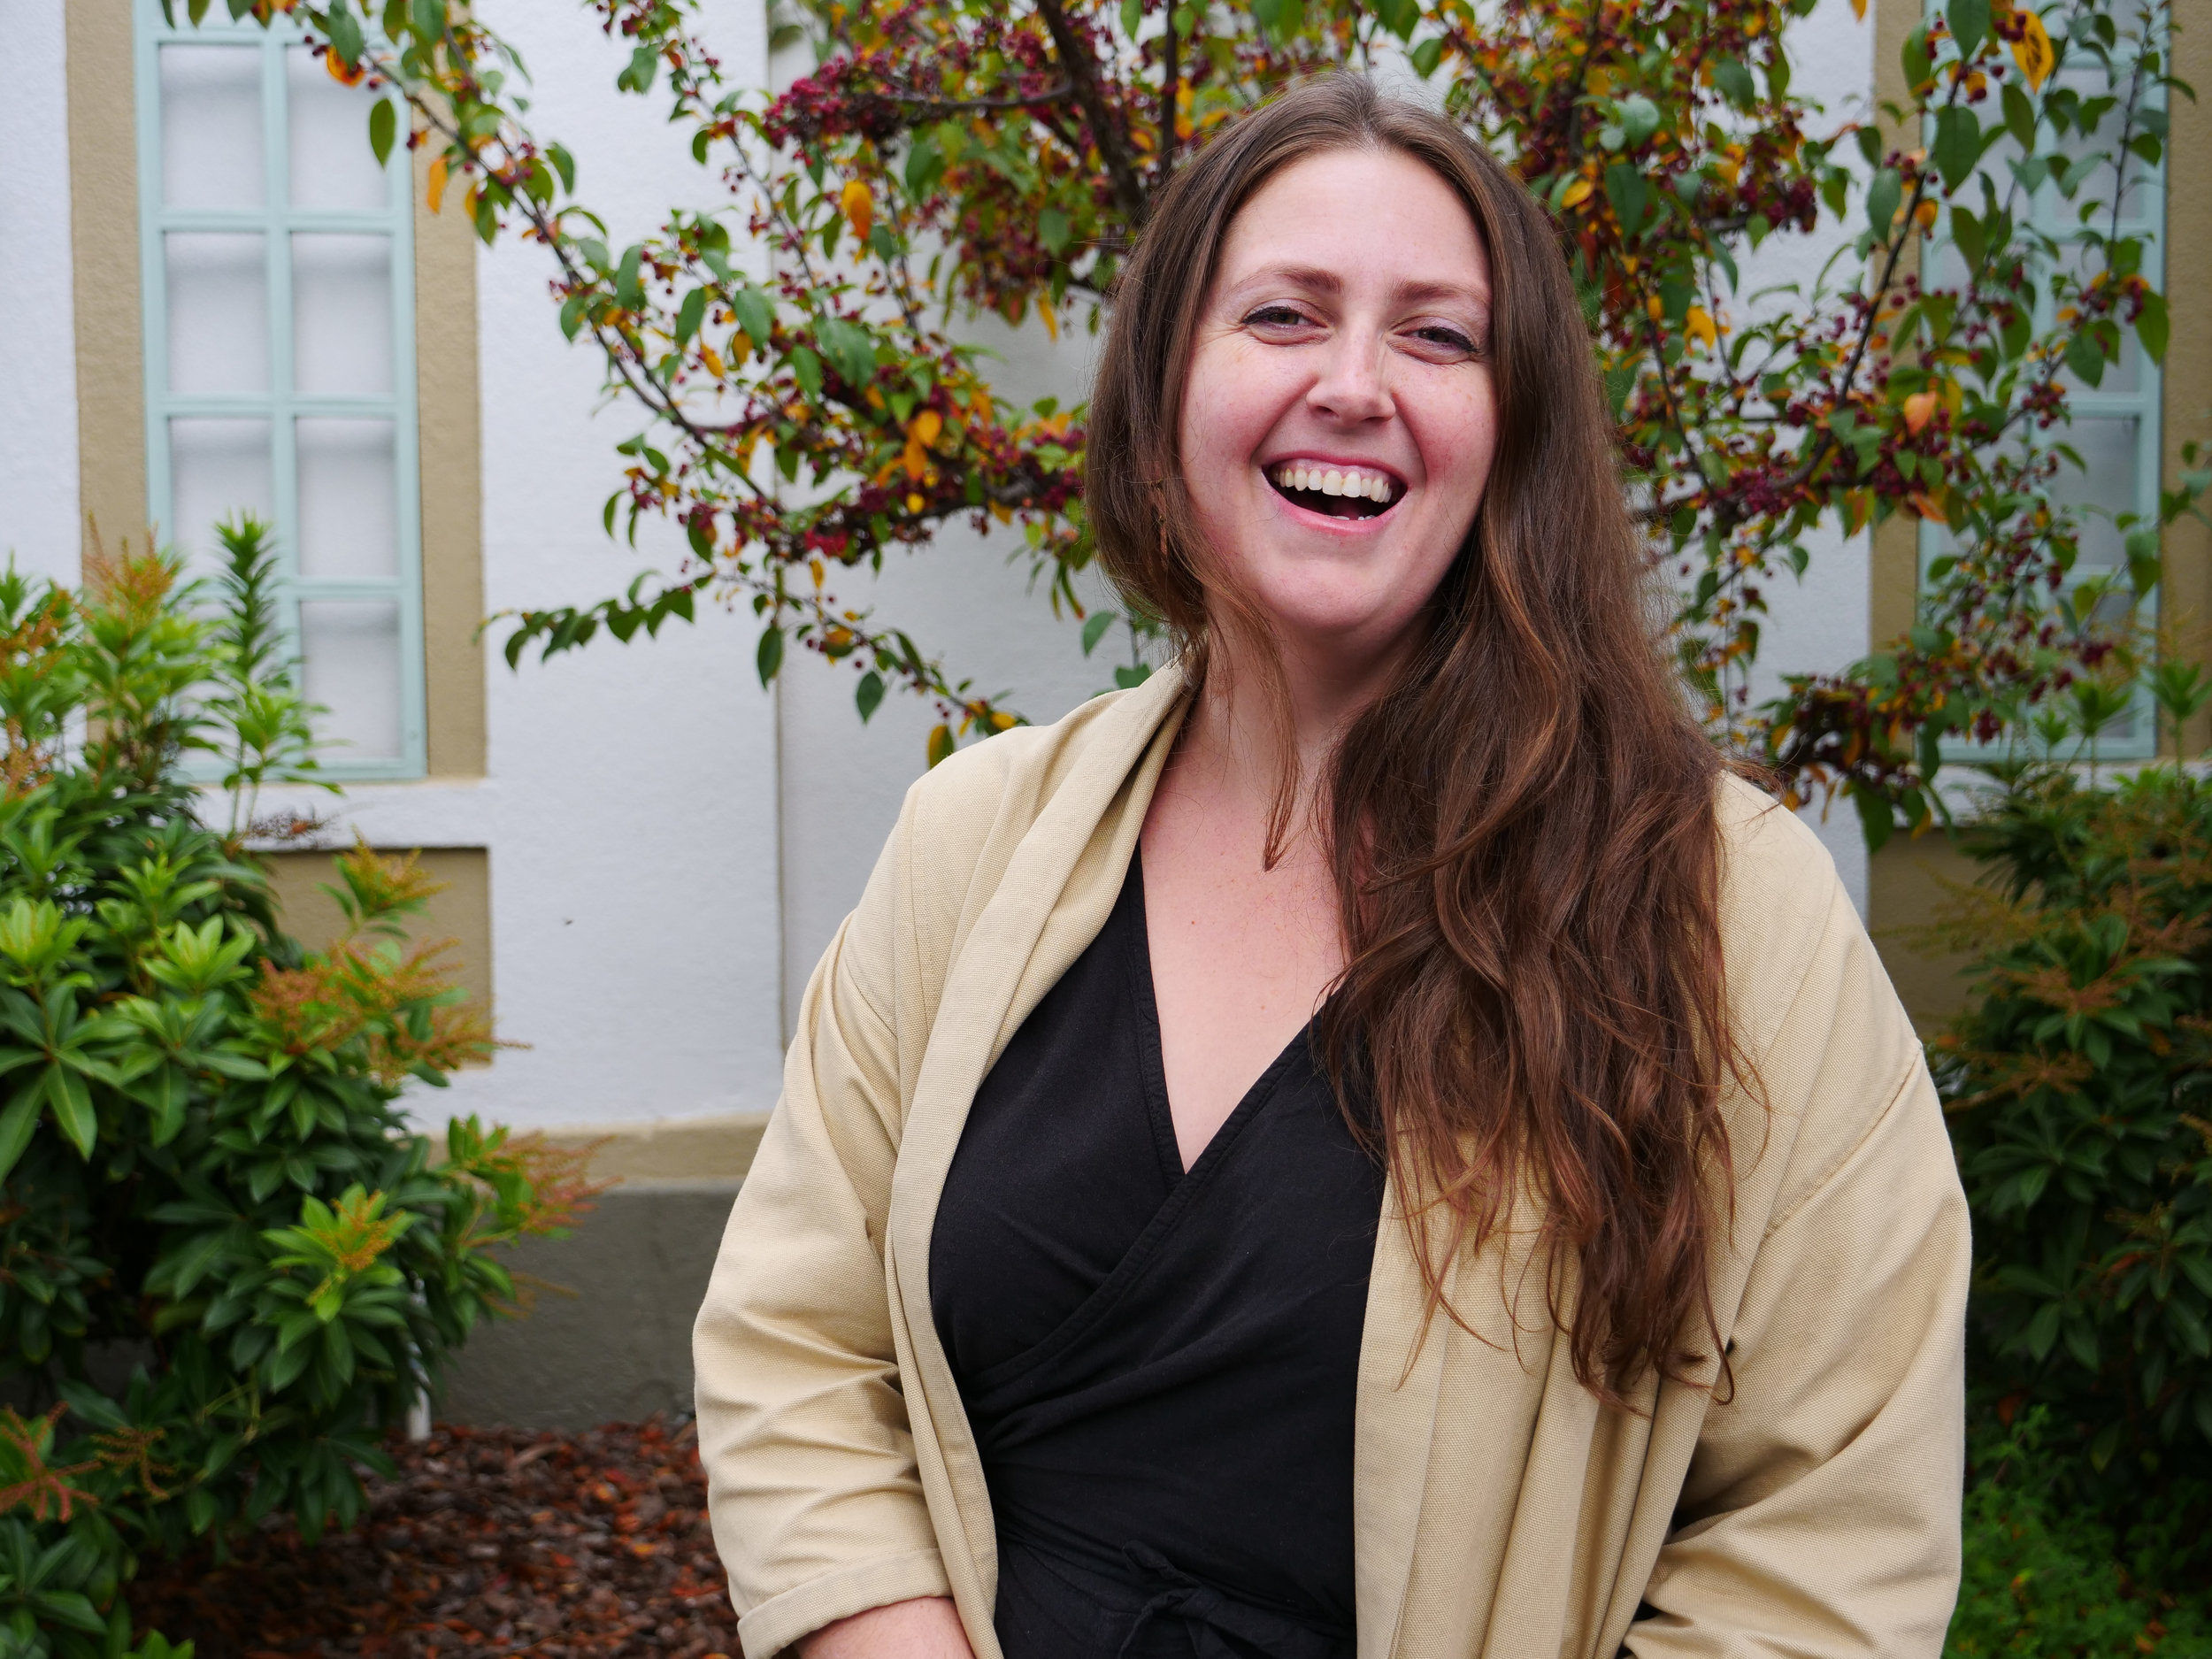 - JENNIFER JOY JAMESON is a public folklorist and cultural organizer with an interest in documenting the ways culture shapes creativity, especially in rural spaces. She directed the Folk and Traditional Arts program at the Mississippi Arts Commission from 2014 to early 2017, and is now based in Los Angeles, working with the statewide Alliance for California Traditional Arts, directing programs, grants, and media work.Jennifer's research and writing has focused primarily on the makers of built art environments, and on music collectors, in the American South. In 2017, Jennifer co-curated an exhibition exploring the local legacy of Loy Bowlin, Mississippi's